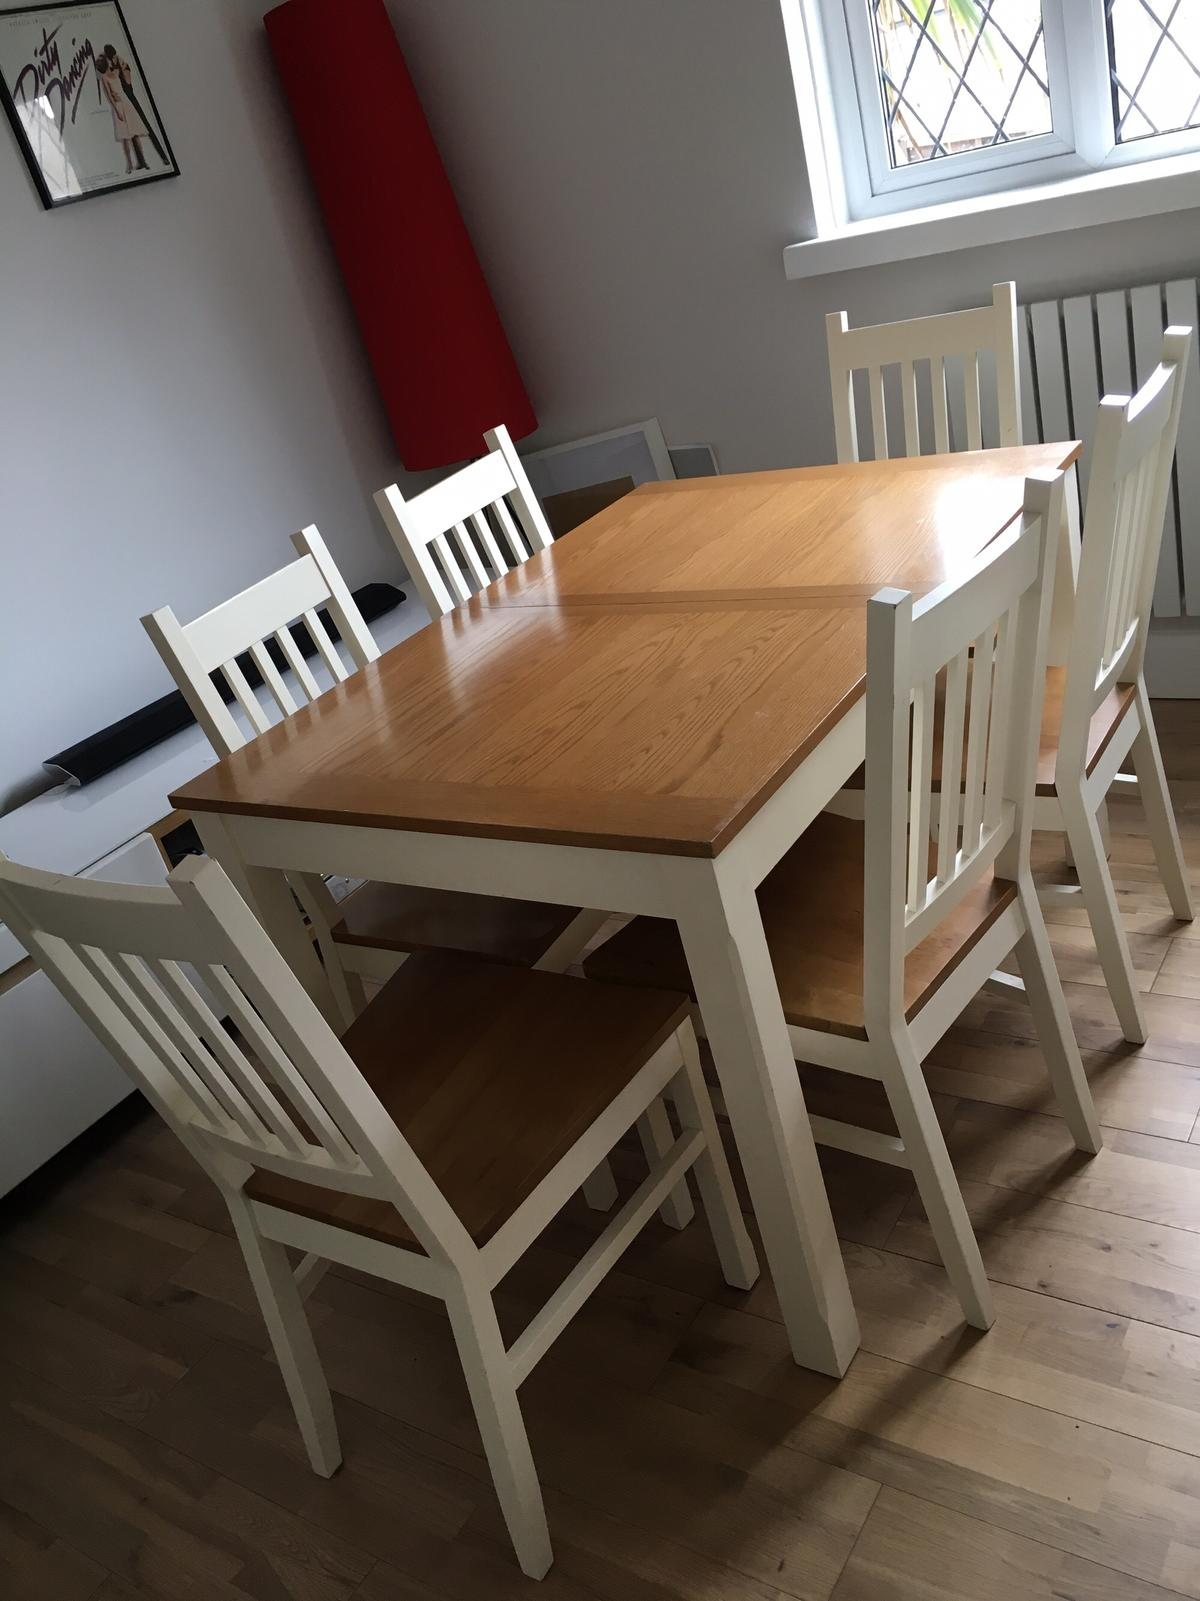 Homebase Extendable Dining Table And 6 Chairs In Sm1 Sutton For 150 00 For Sale Shpock